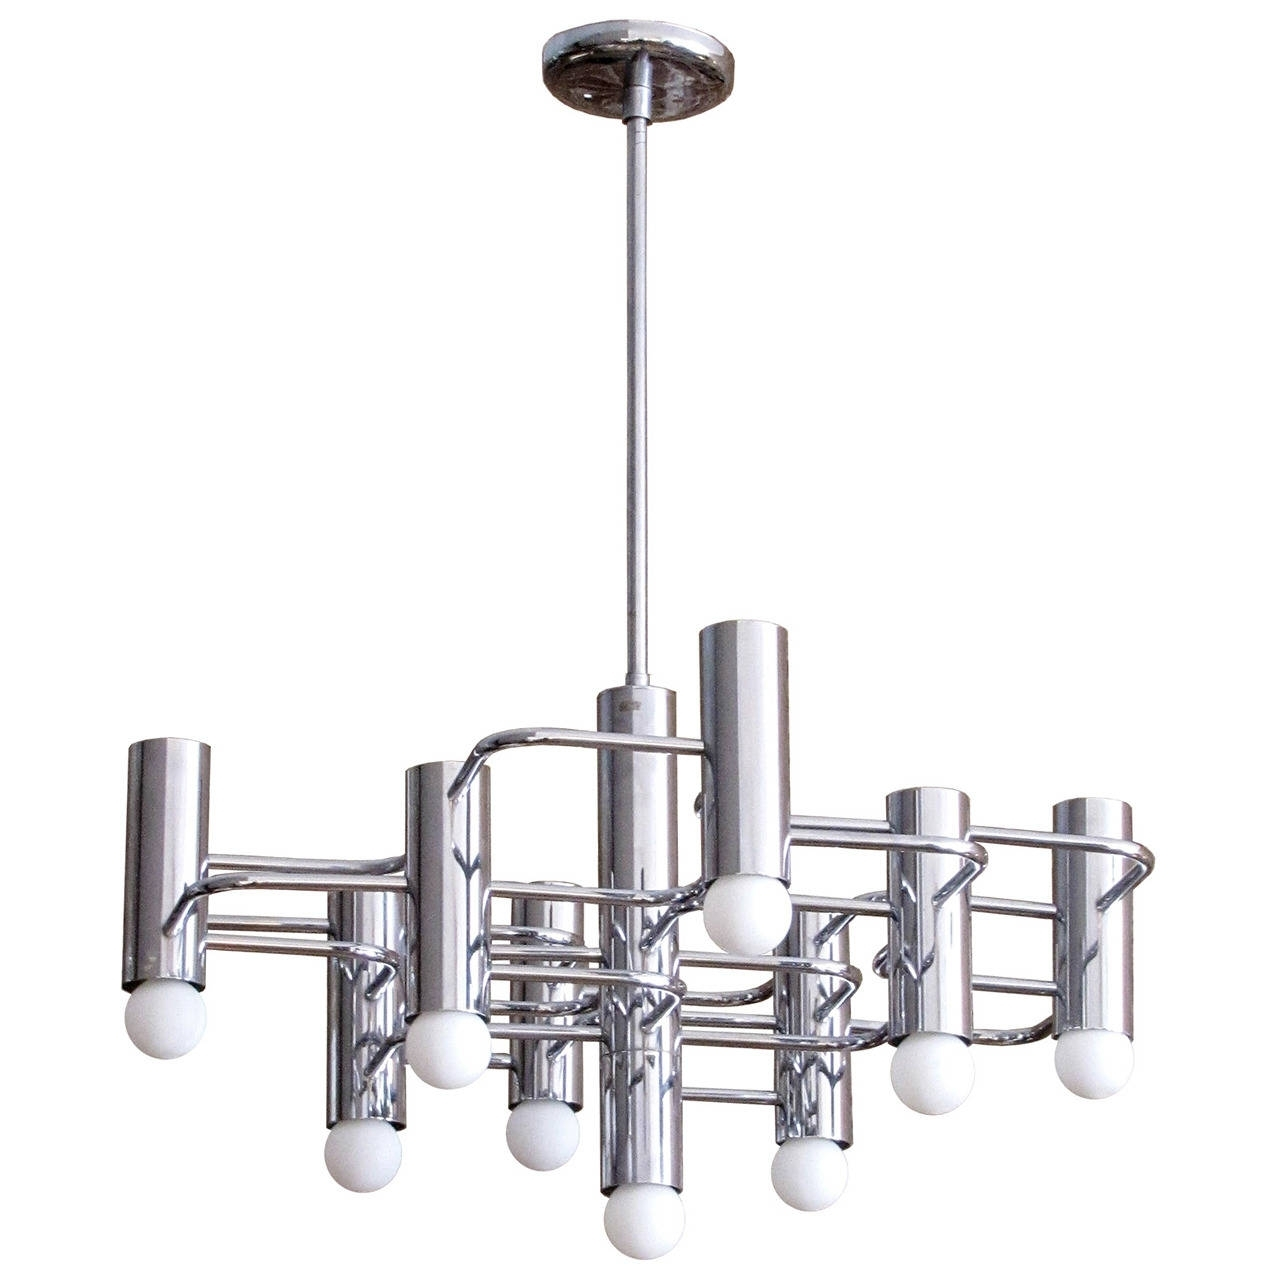 Boulanger Chrome Chandelier, 1960 For Sale At 1stdibs Pertaining To Well Known Chrome Chandelier (View 14 of 20)